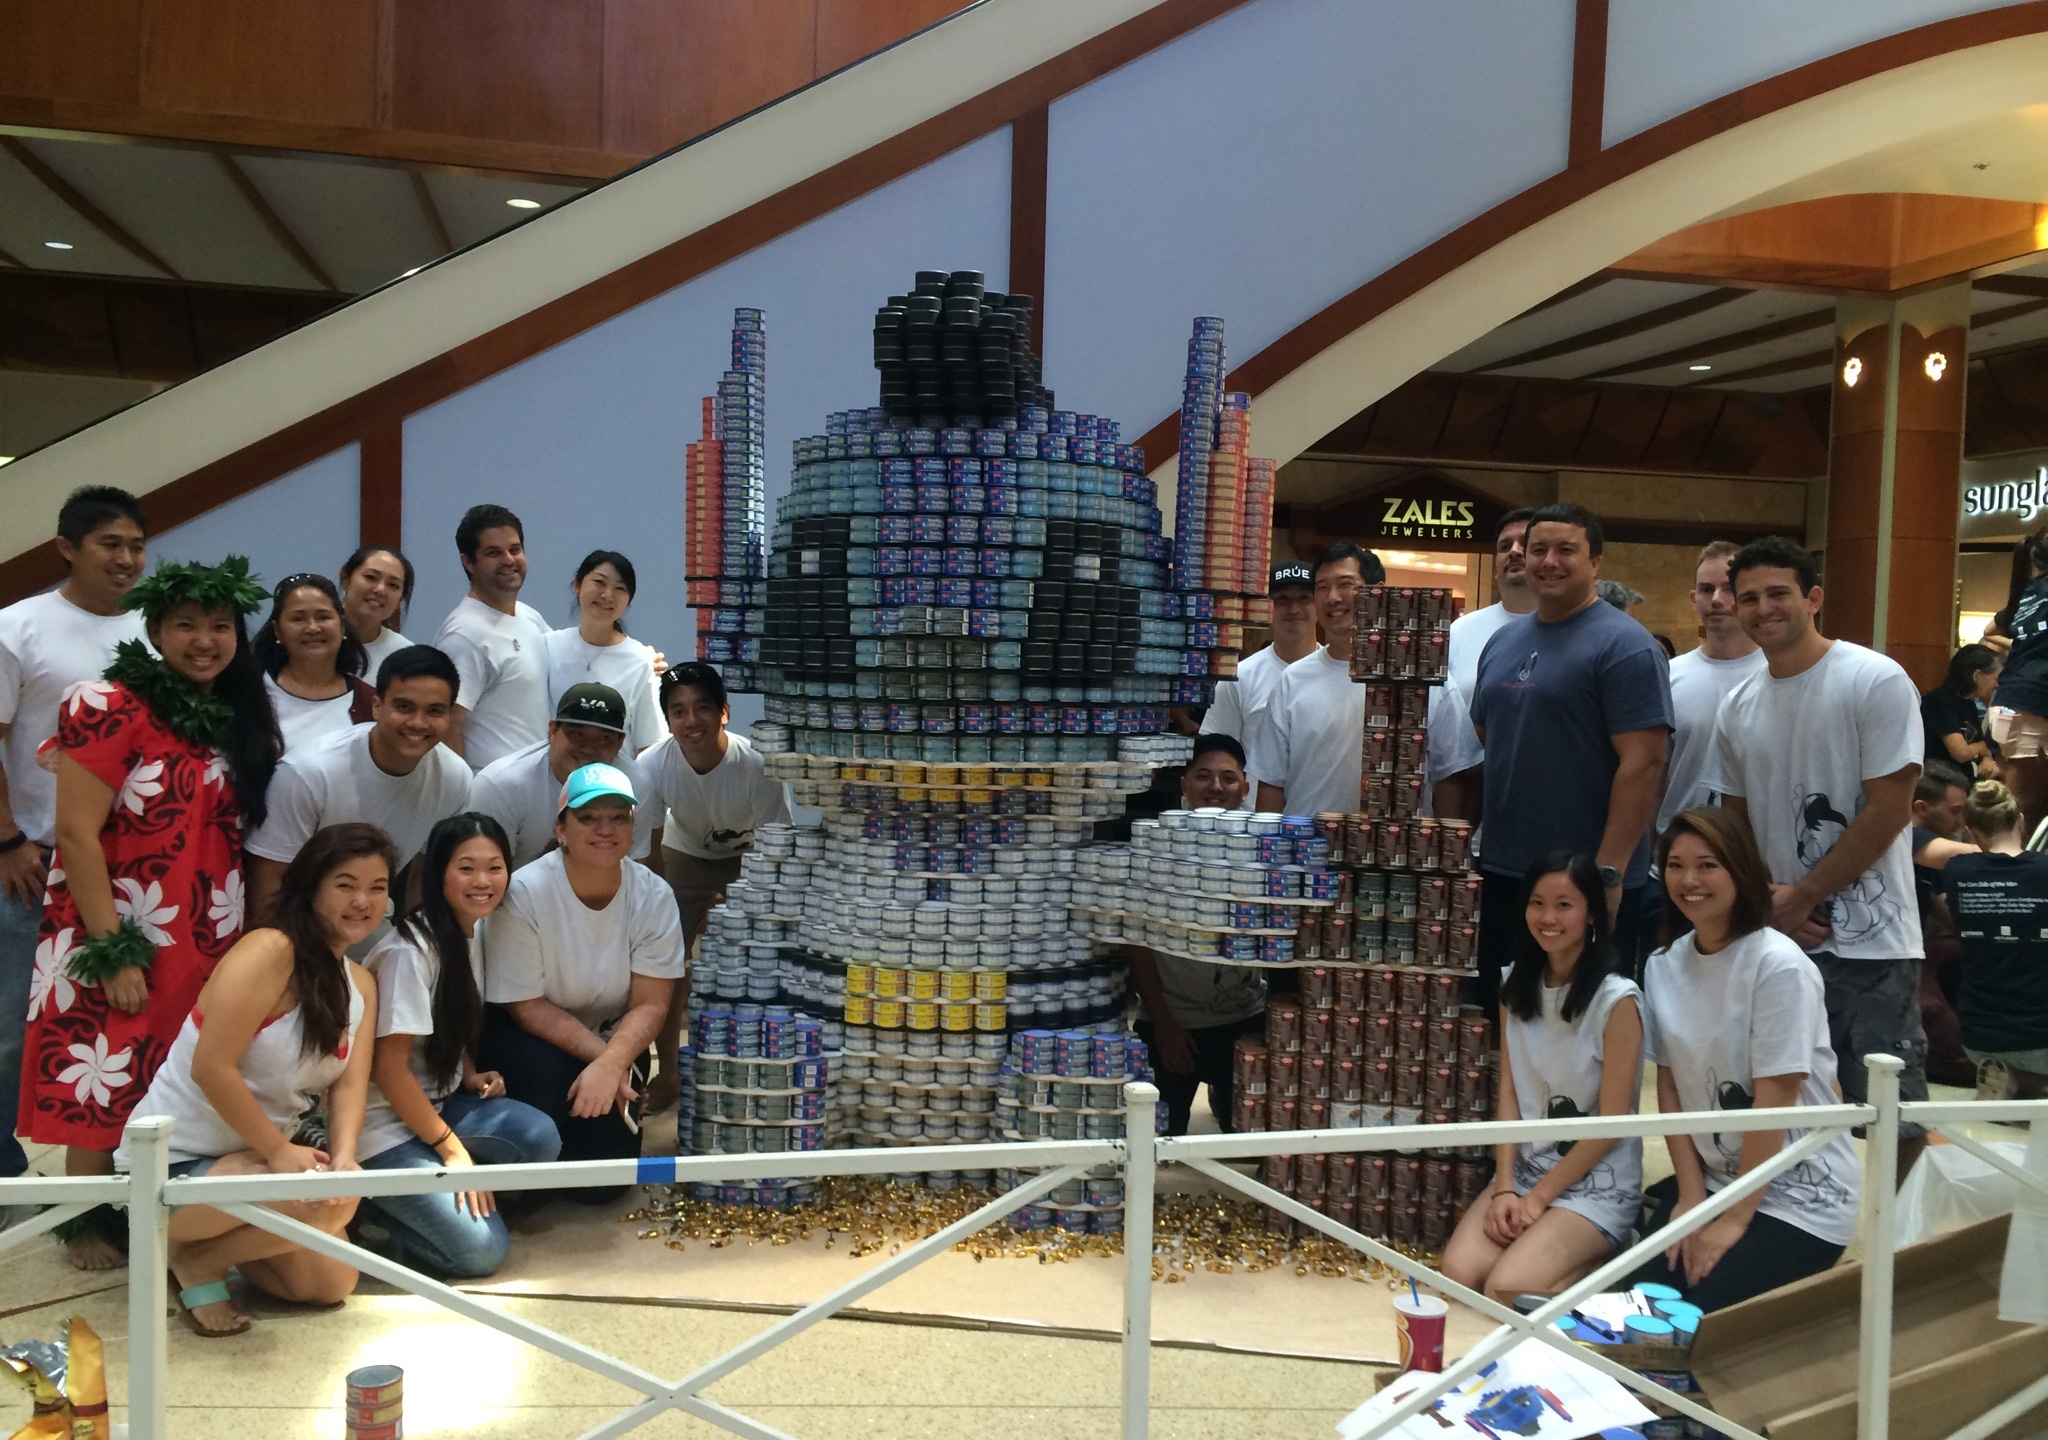 2015Canstruction_G70Layton4_121293